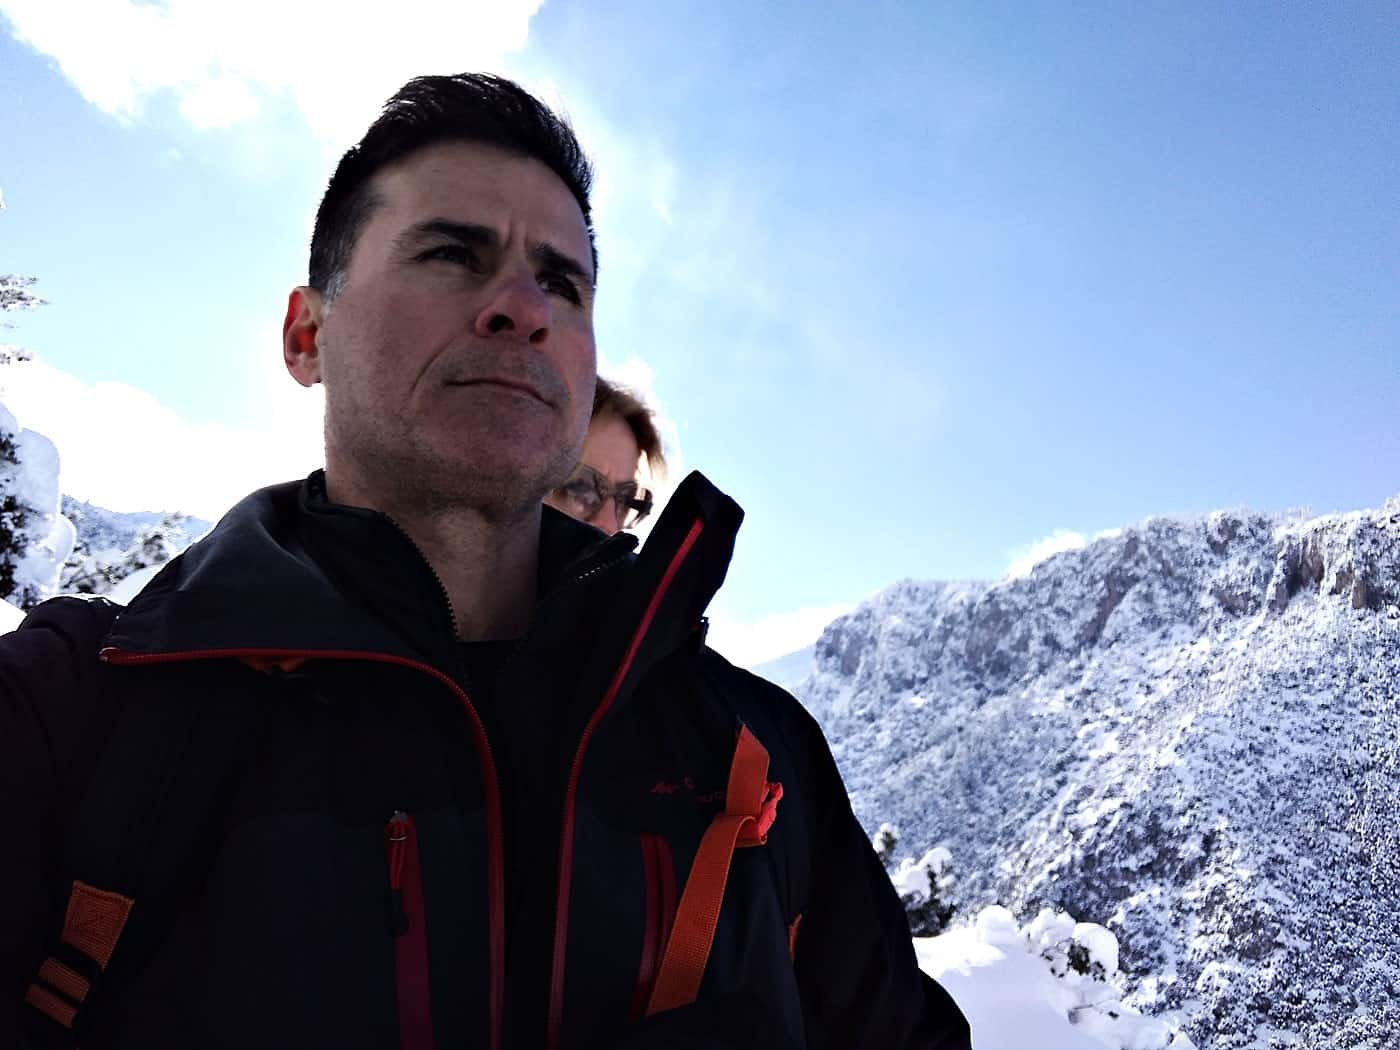 Best Base Layers for Extreme Cold